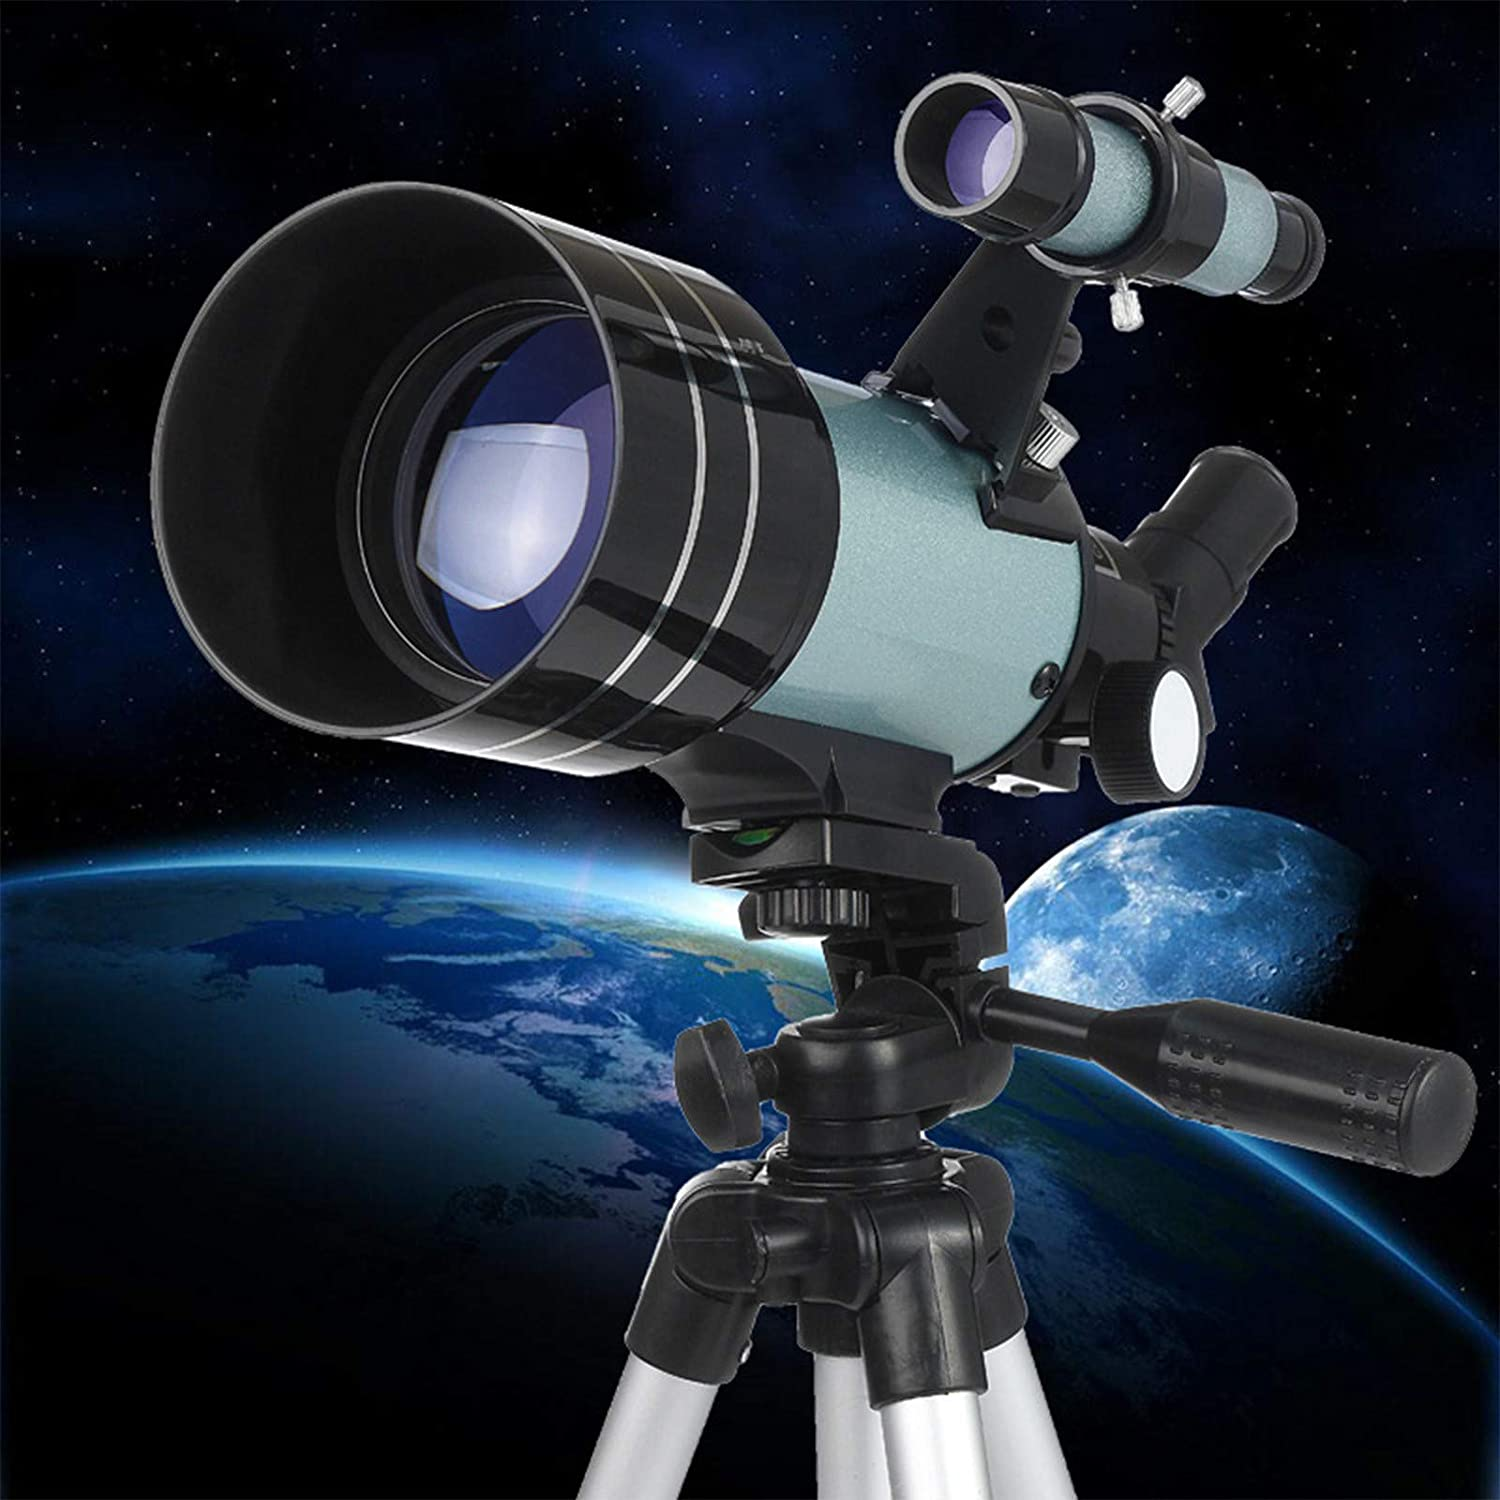 Kexle Astronomy Telescopes for Adults & Kids, 70mm Aperture Telescope with F30070 High Bracket Professional Stargazing, High Magnification High Definition Night Vision Entry Telescope